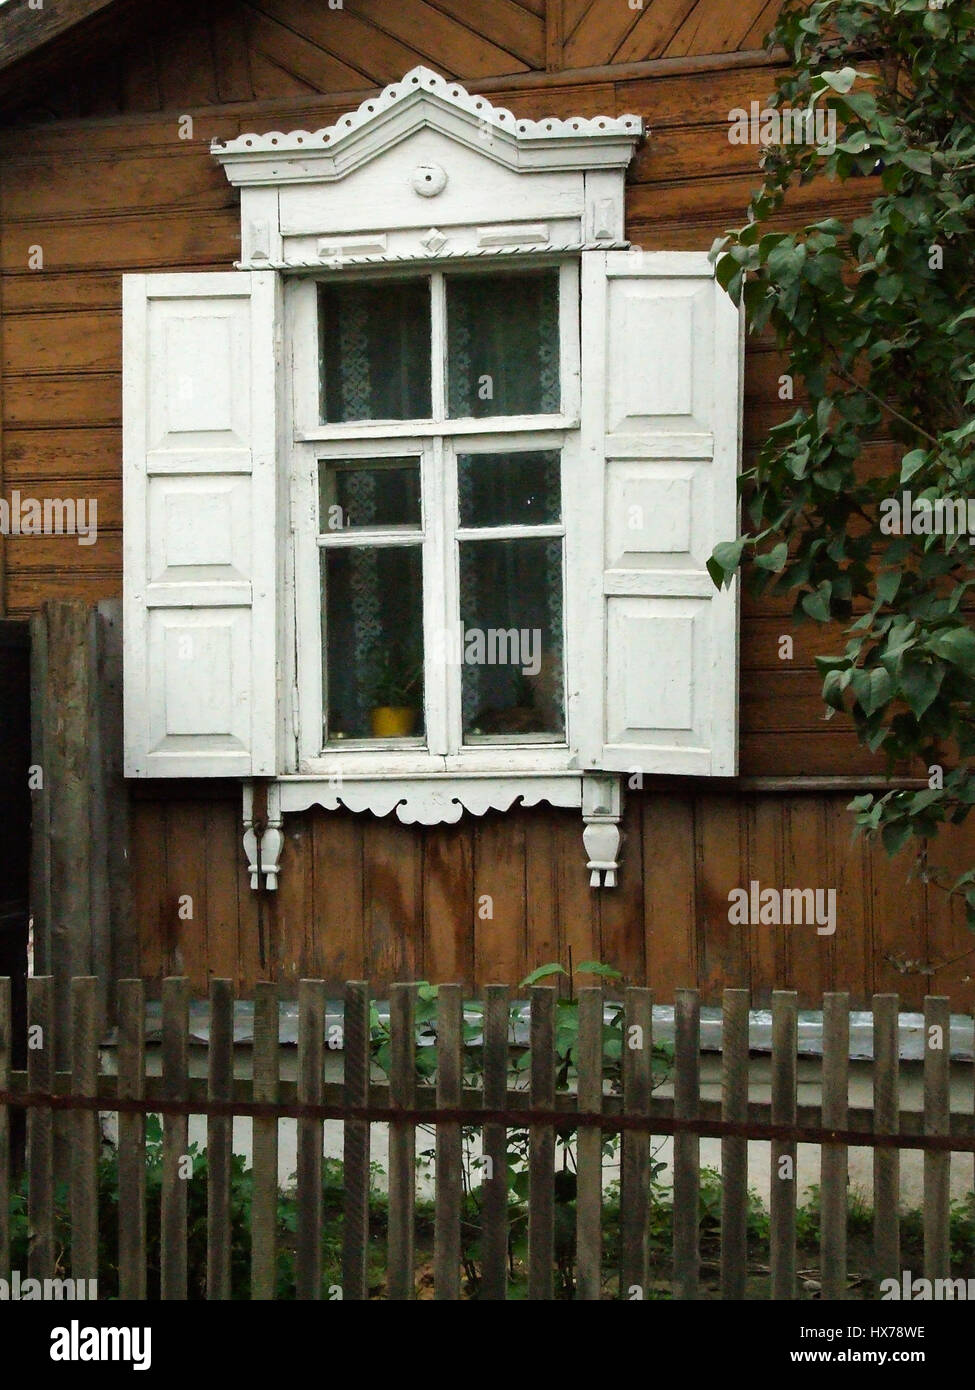 Decorative Windows For Houses decorative windows for houses decorative windows for houses ingeflinte best model A Traditional Russian House Made Of Wood Or Timbers And With Nalichniki Fancy Decorative Wood Trim Around The Windows This Style Of House Is Disa